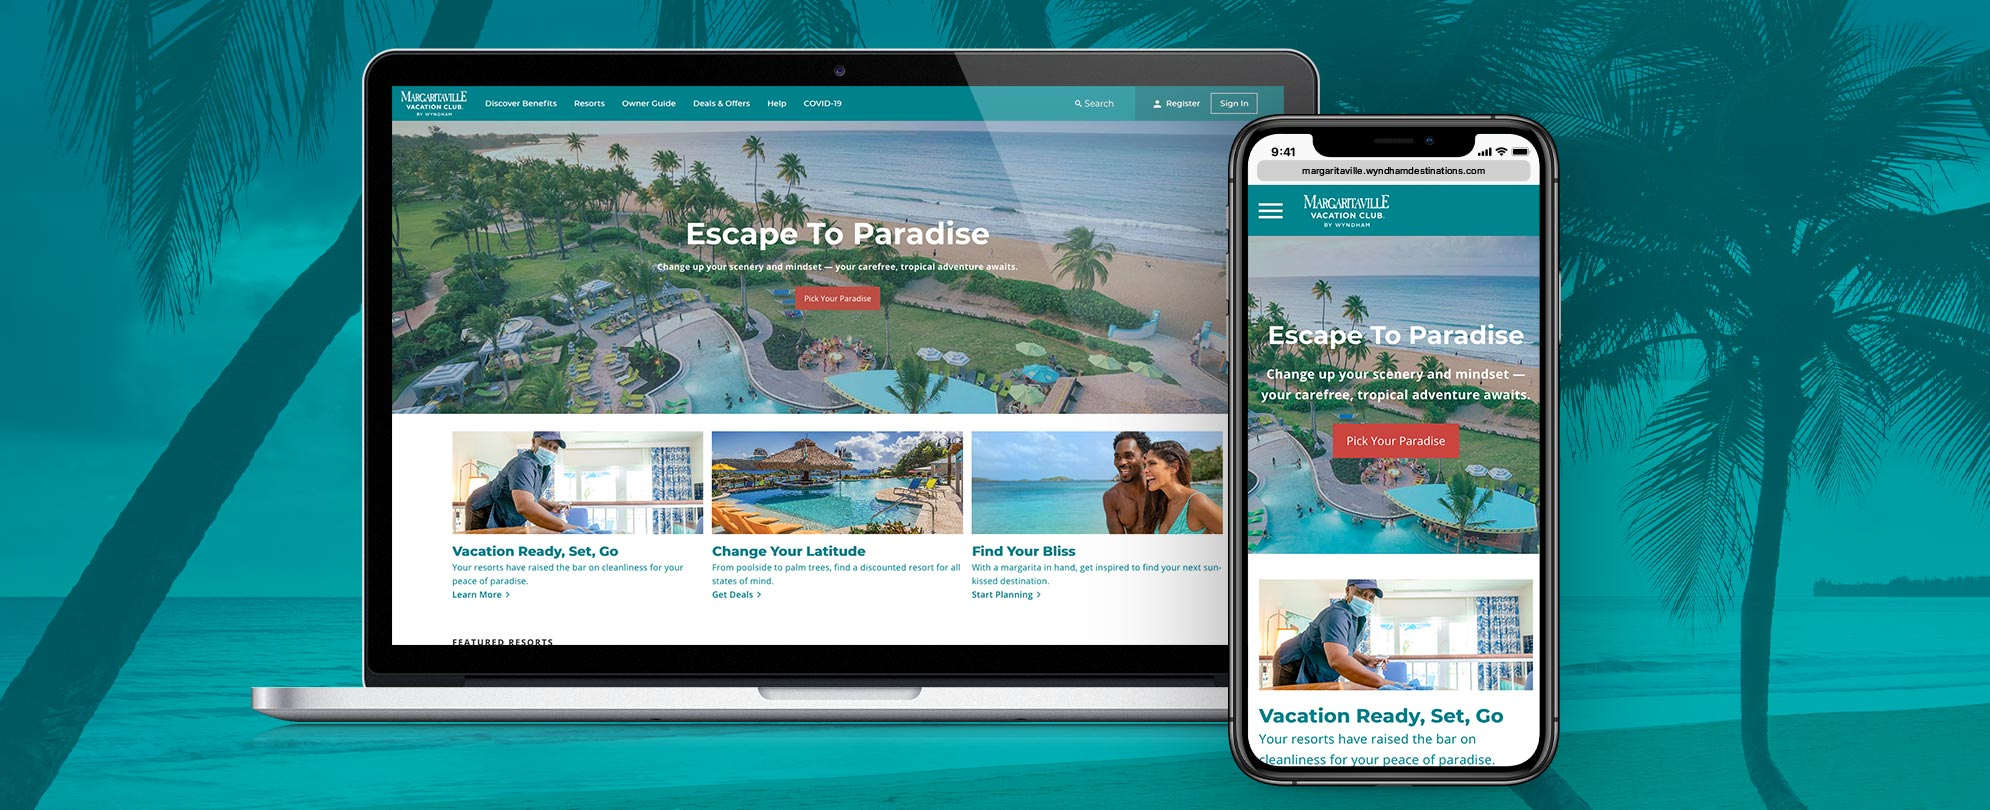 Laptop and mobile display of the new Margaritaville Vacation Club by Wyndham website